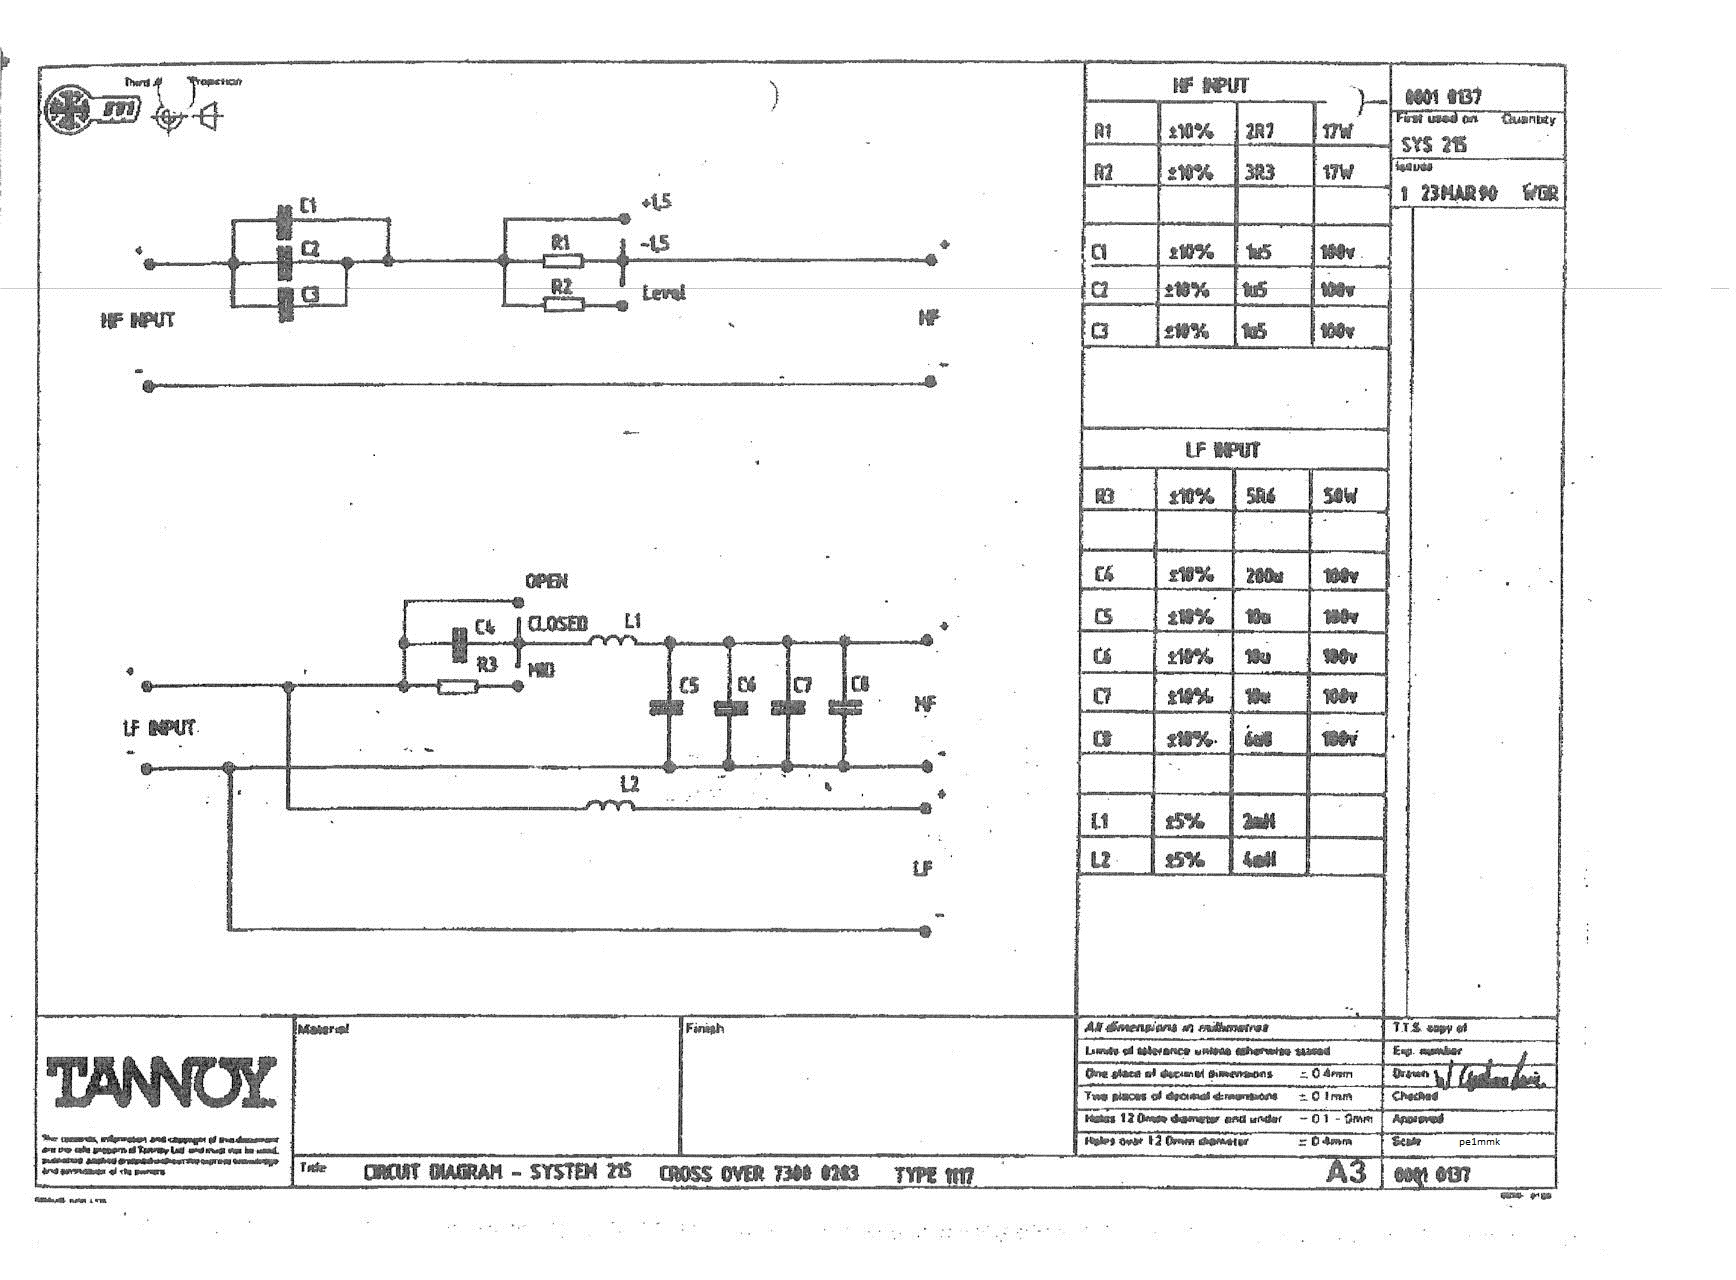 212 Guitar Cabinet Wiring Diagram Speaker Schematics How To Wire A 2 12 Www Cintronbeveragegroup Com